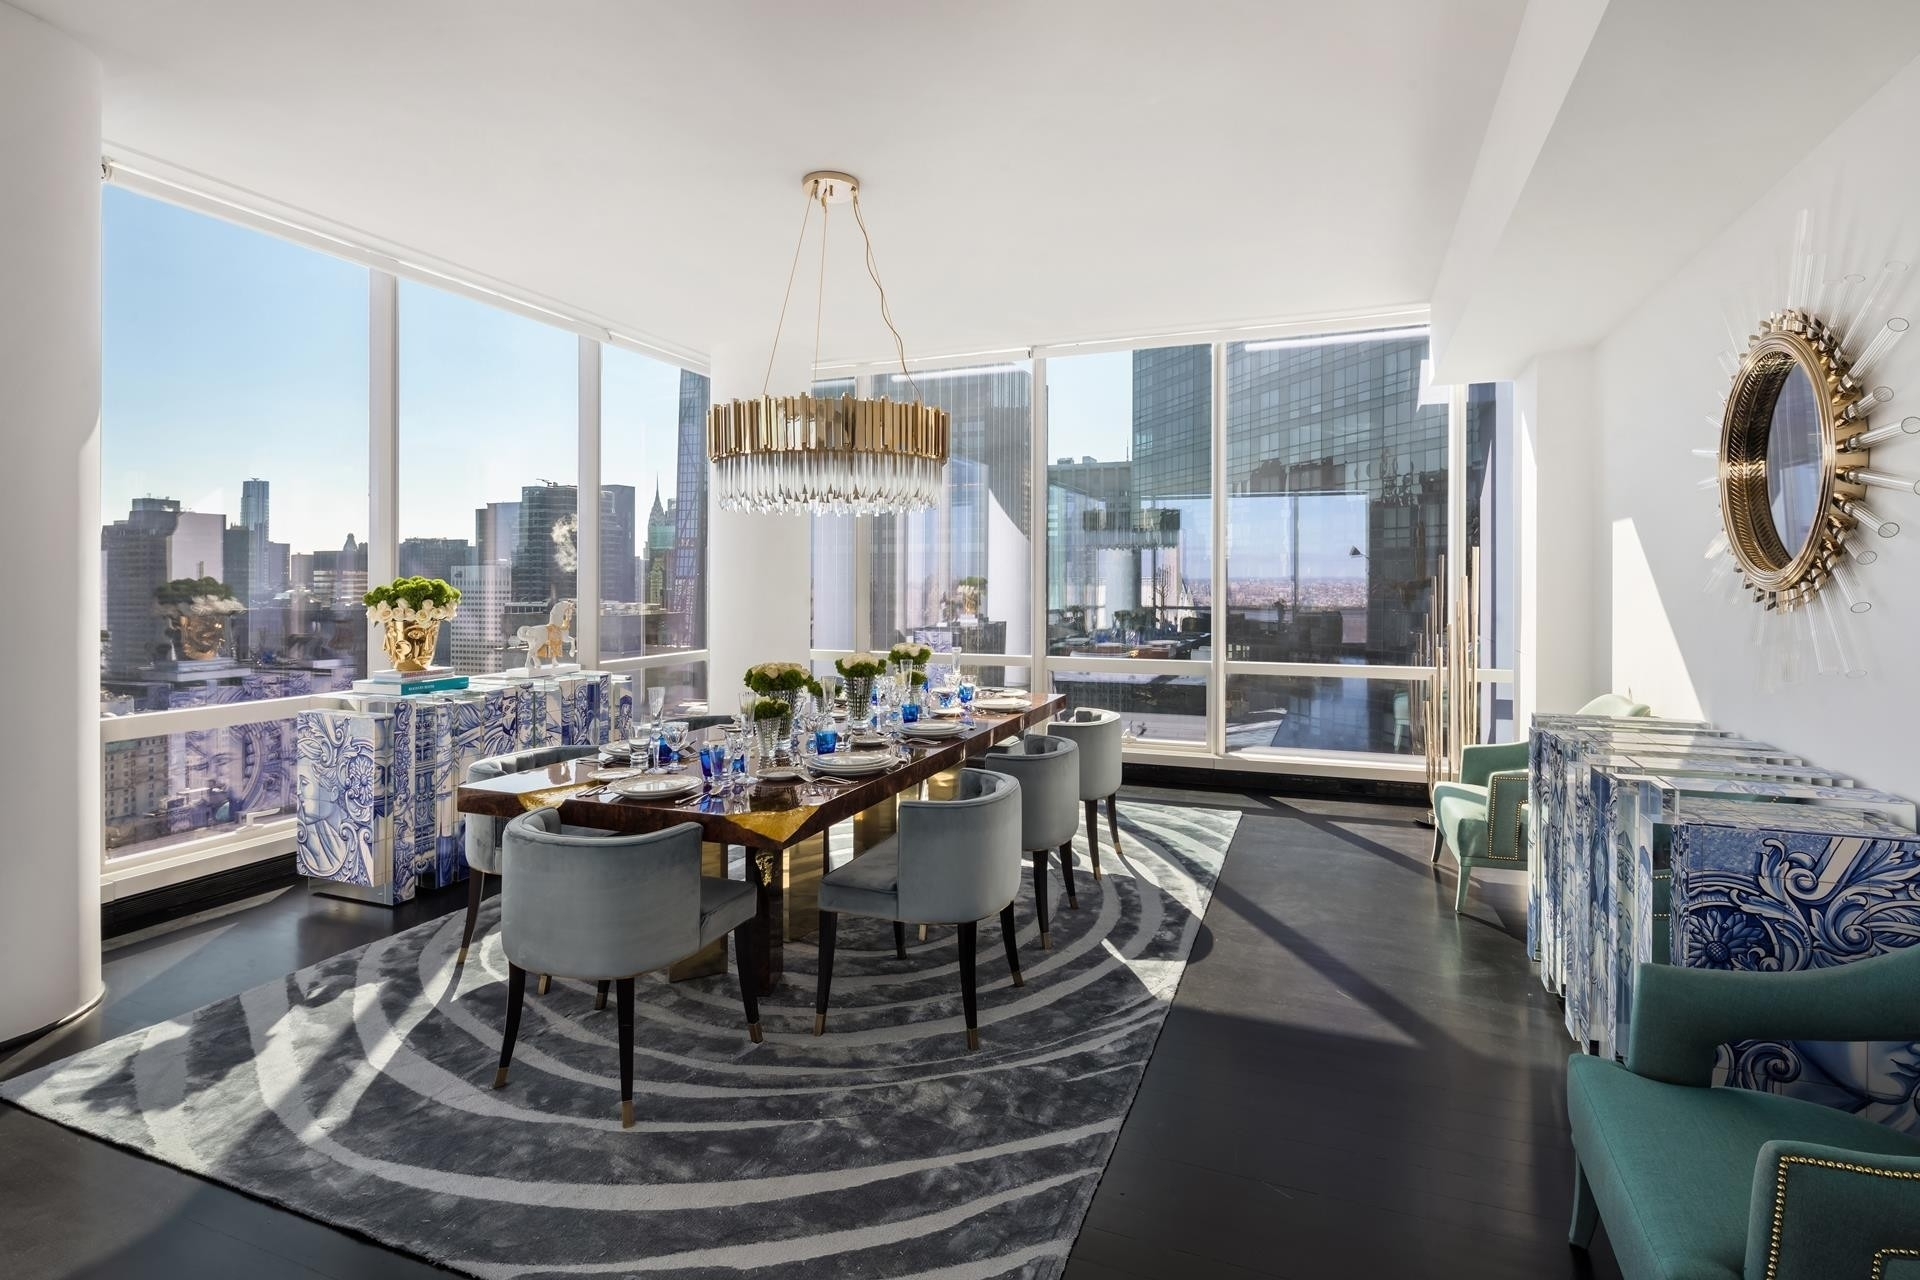 3. Condominiums for Sale at One57, 157 West 57th St, 45C Midtown West, New York, NY 10019